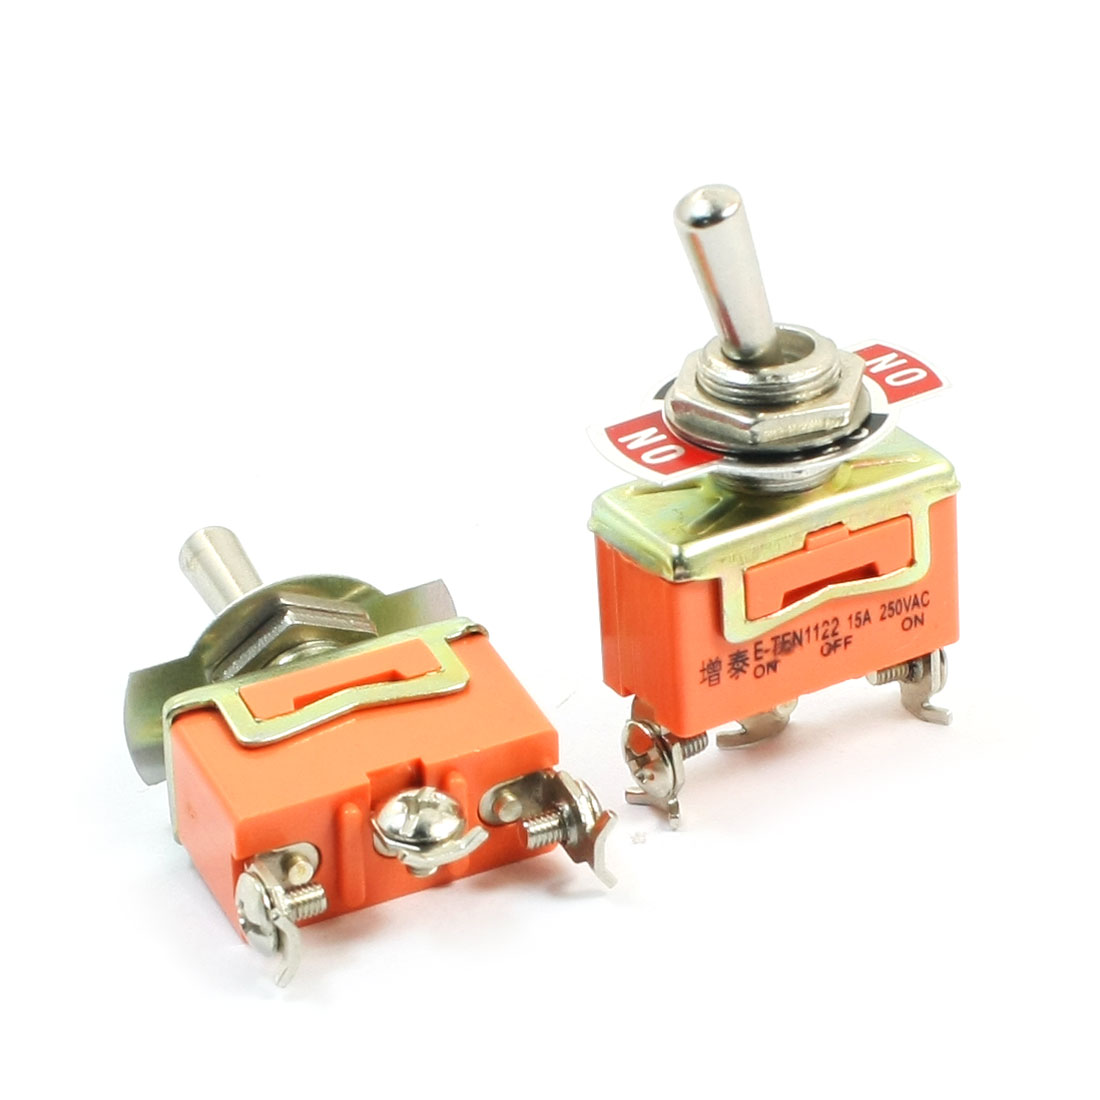 2PCS AC250V 15A 3 Positions SPDT Latching Toggle Switches Orange